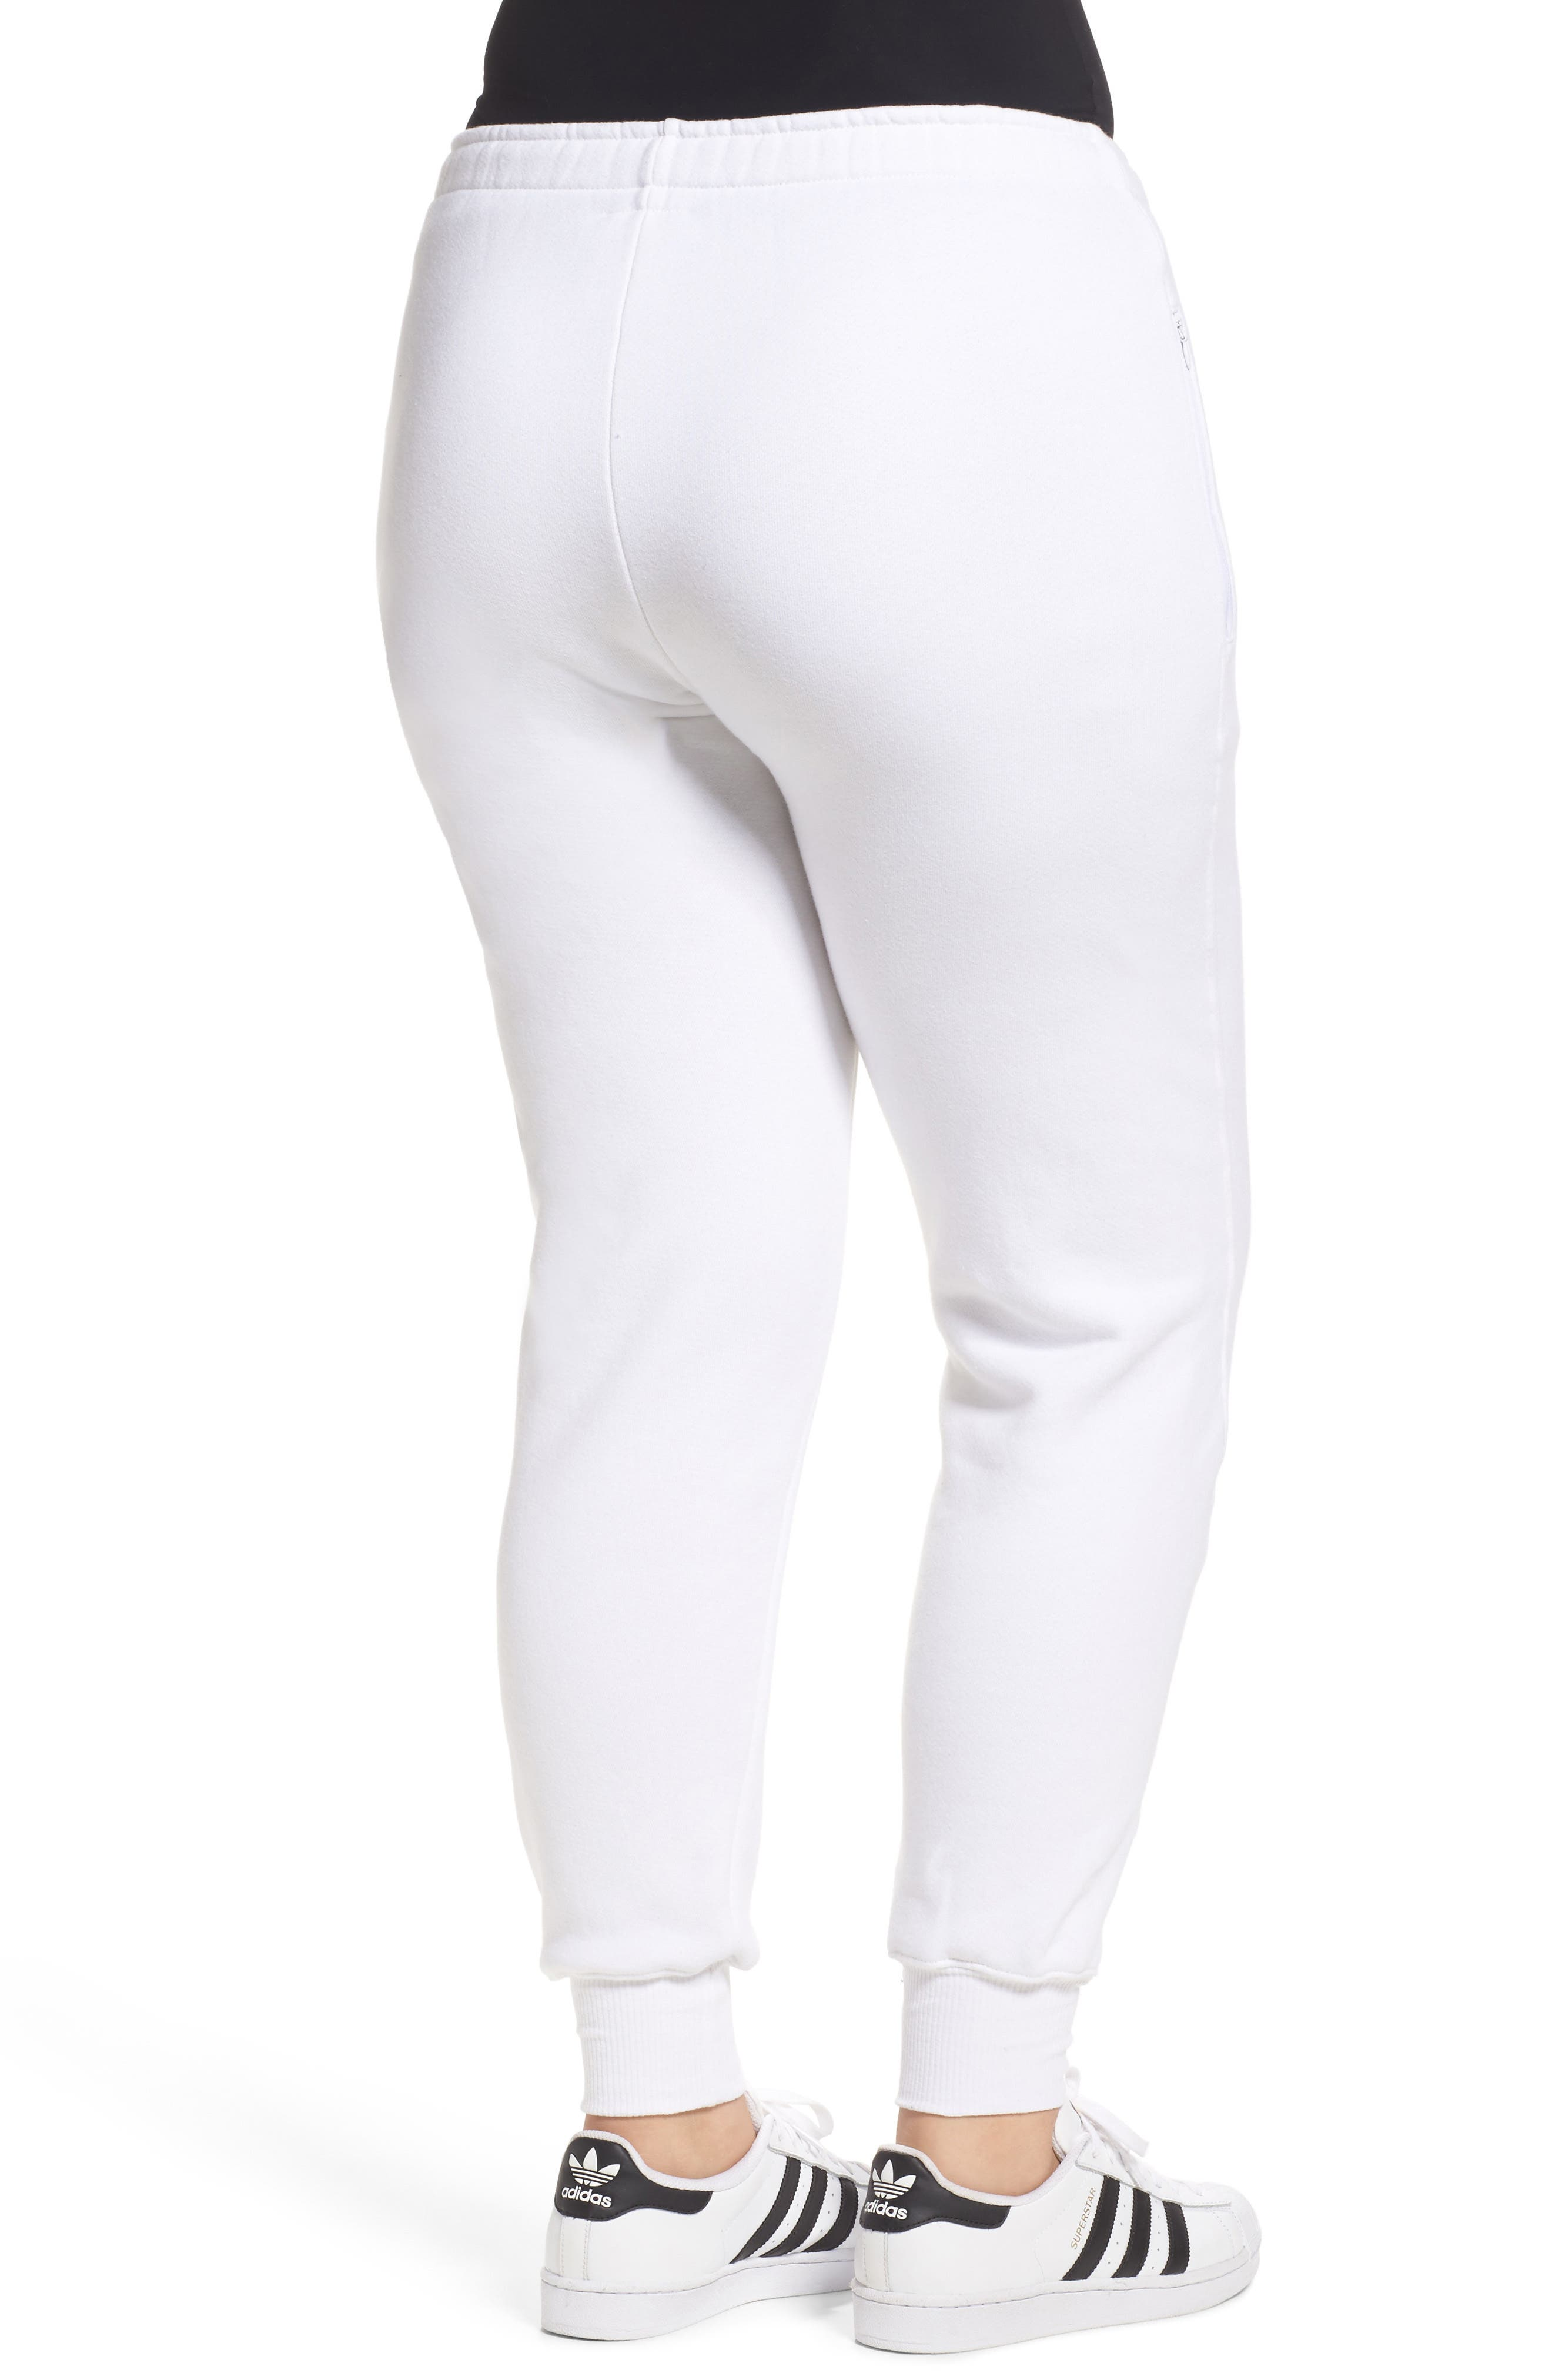 Good Sweats The Twisted Seam Pants,                             Alternate thumbnail 6, color,                             Off White